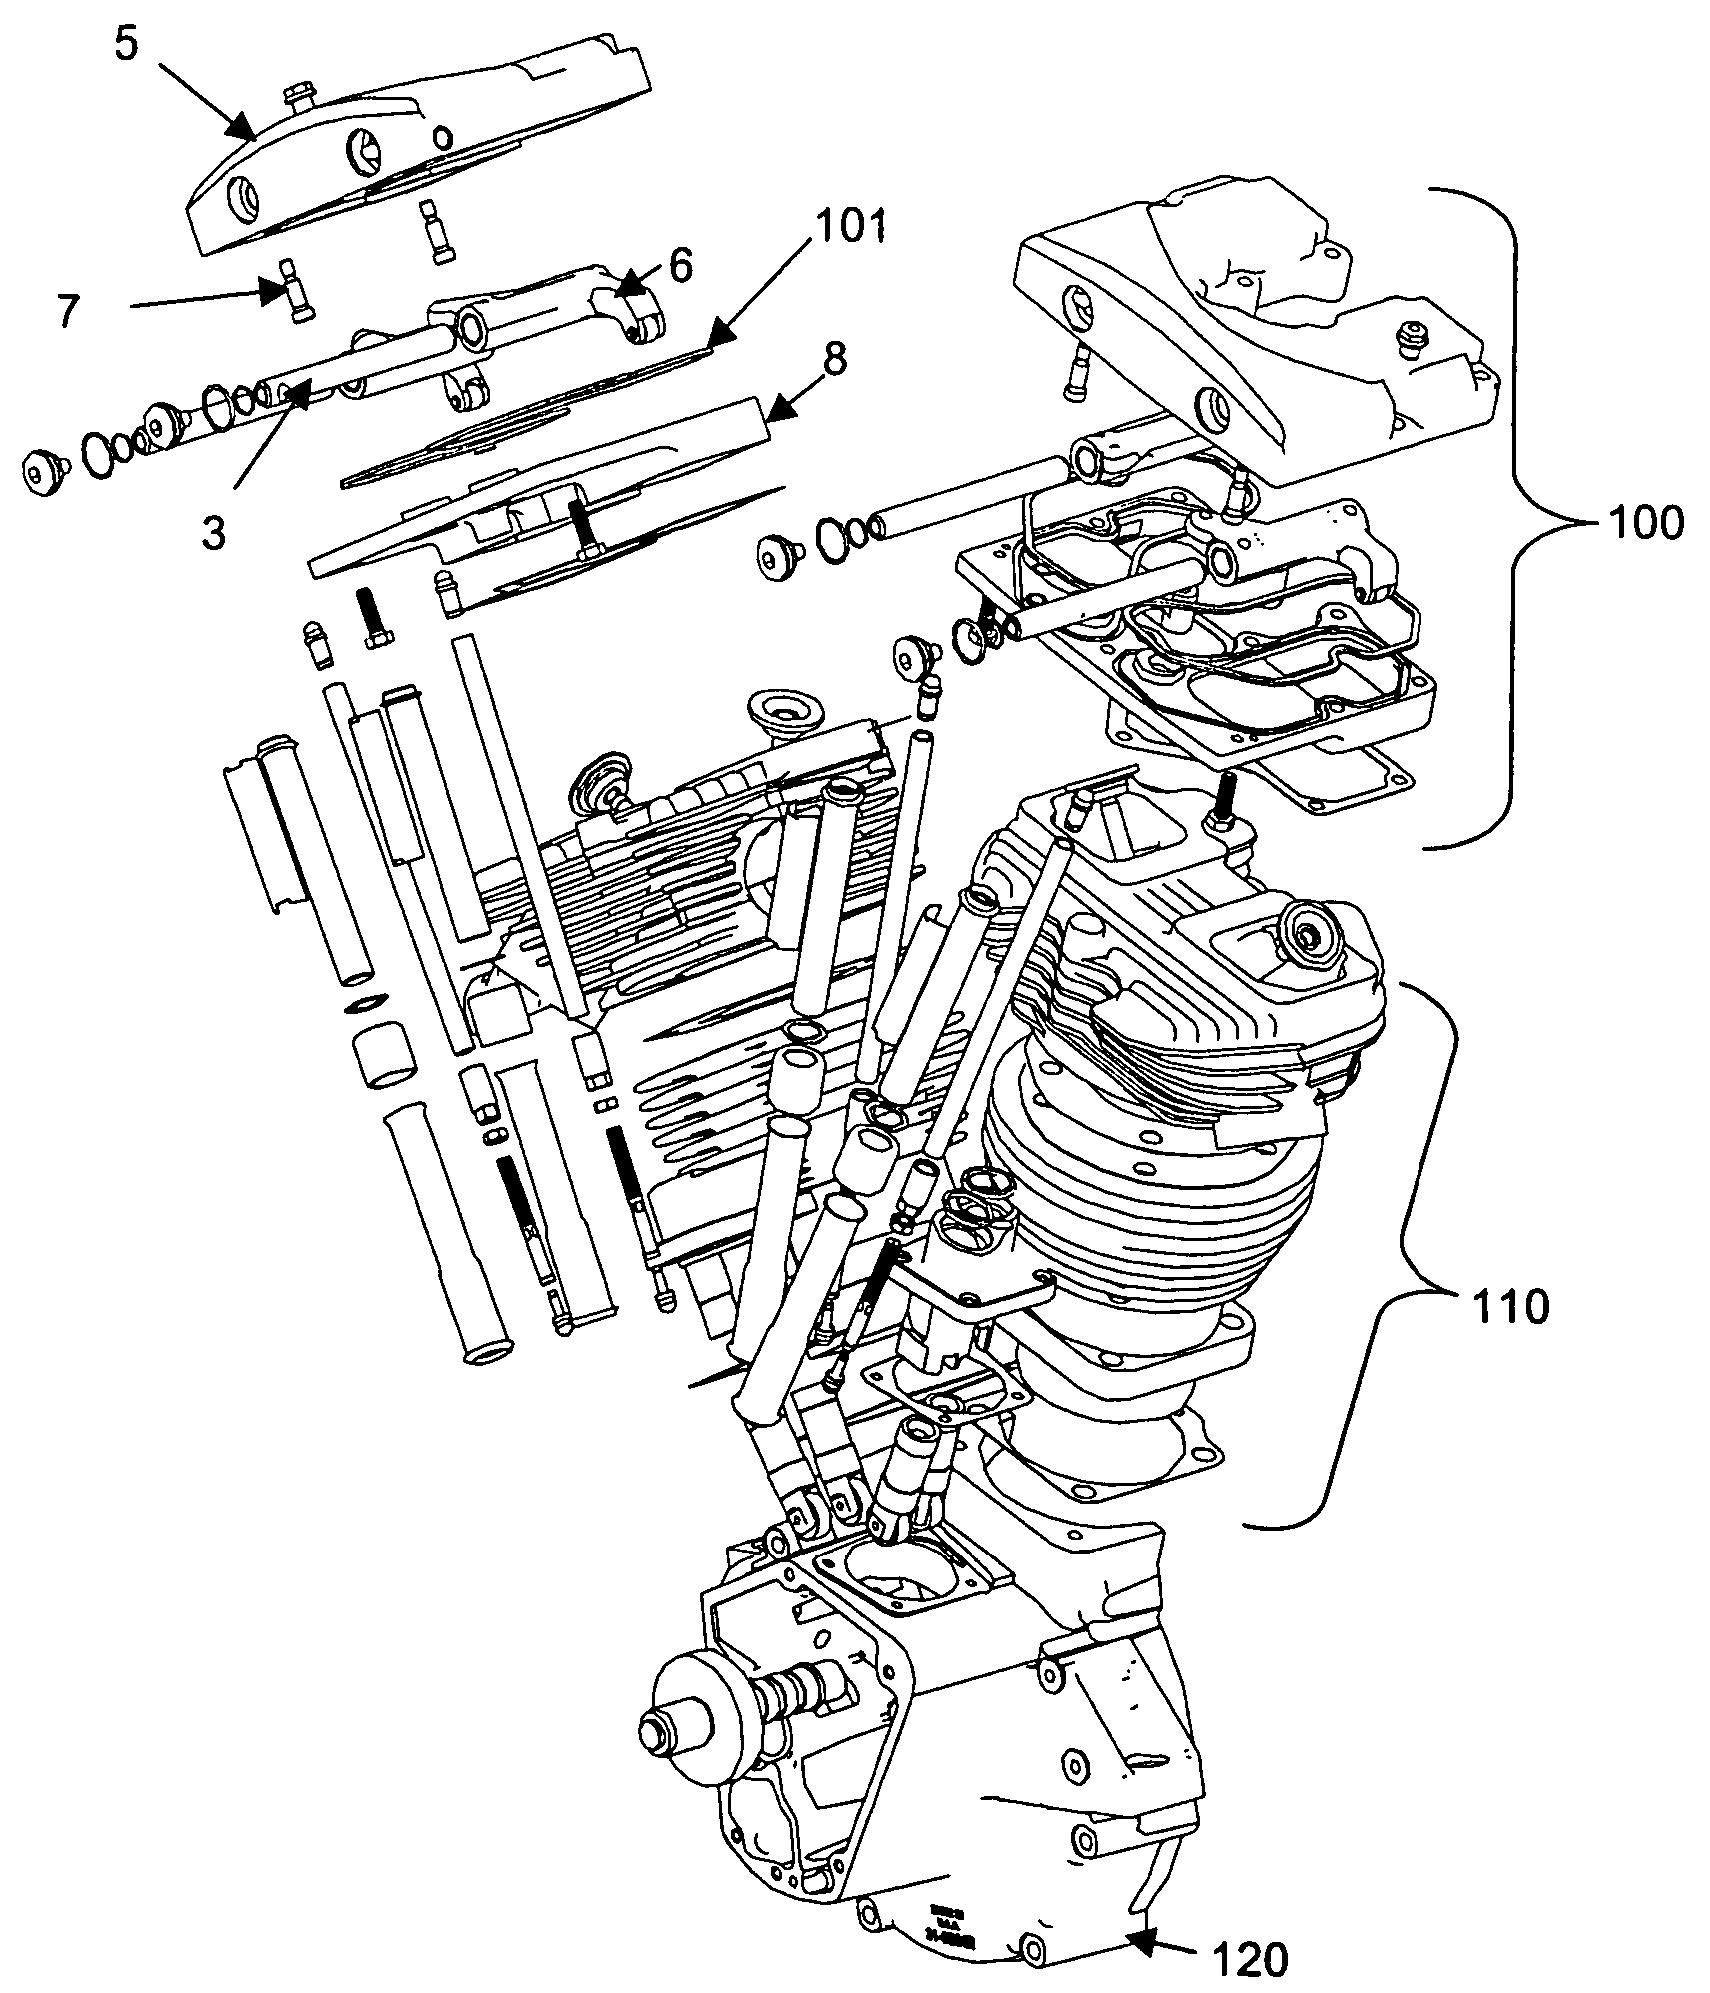 harley engine diagram | quit-connection wiring diagram number -  quit-connection.garbobar.it  garbo bar